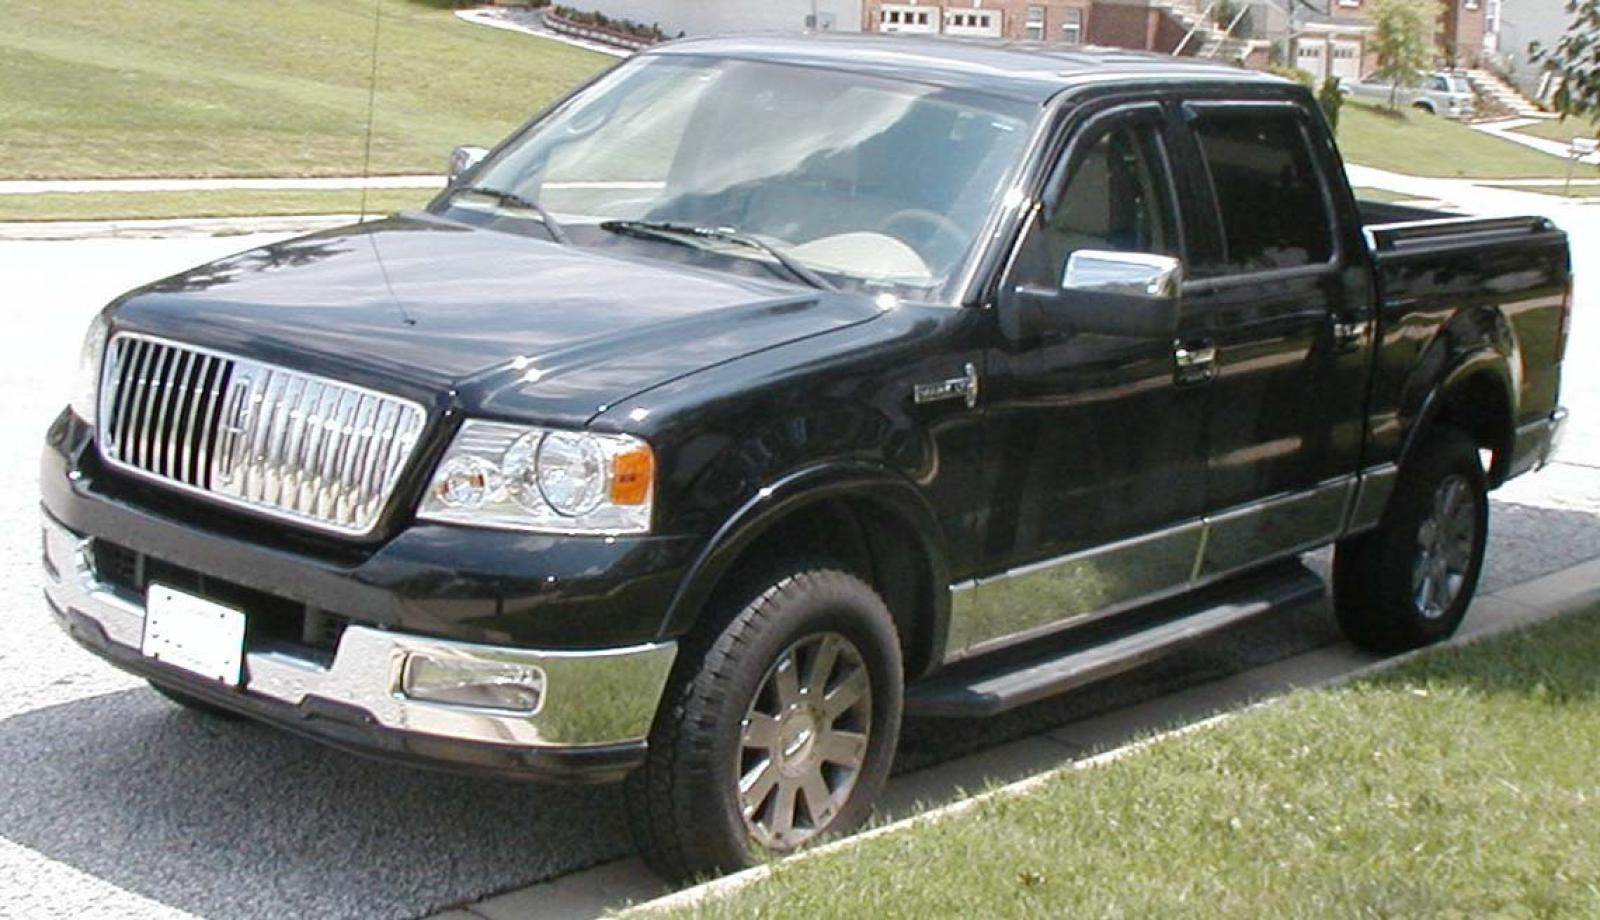 2007 lincoln mark lt information and photos zombiedrive. Black Bedroom Furniture Sets. Home Design Ideas